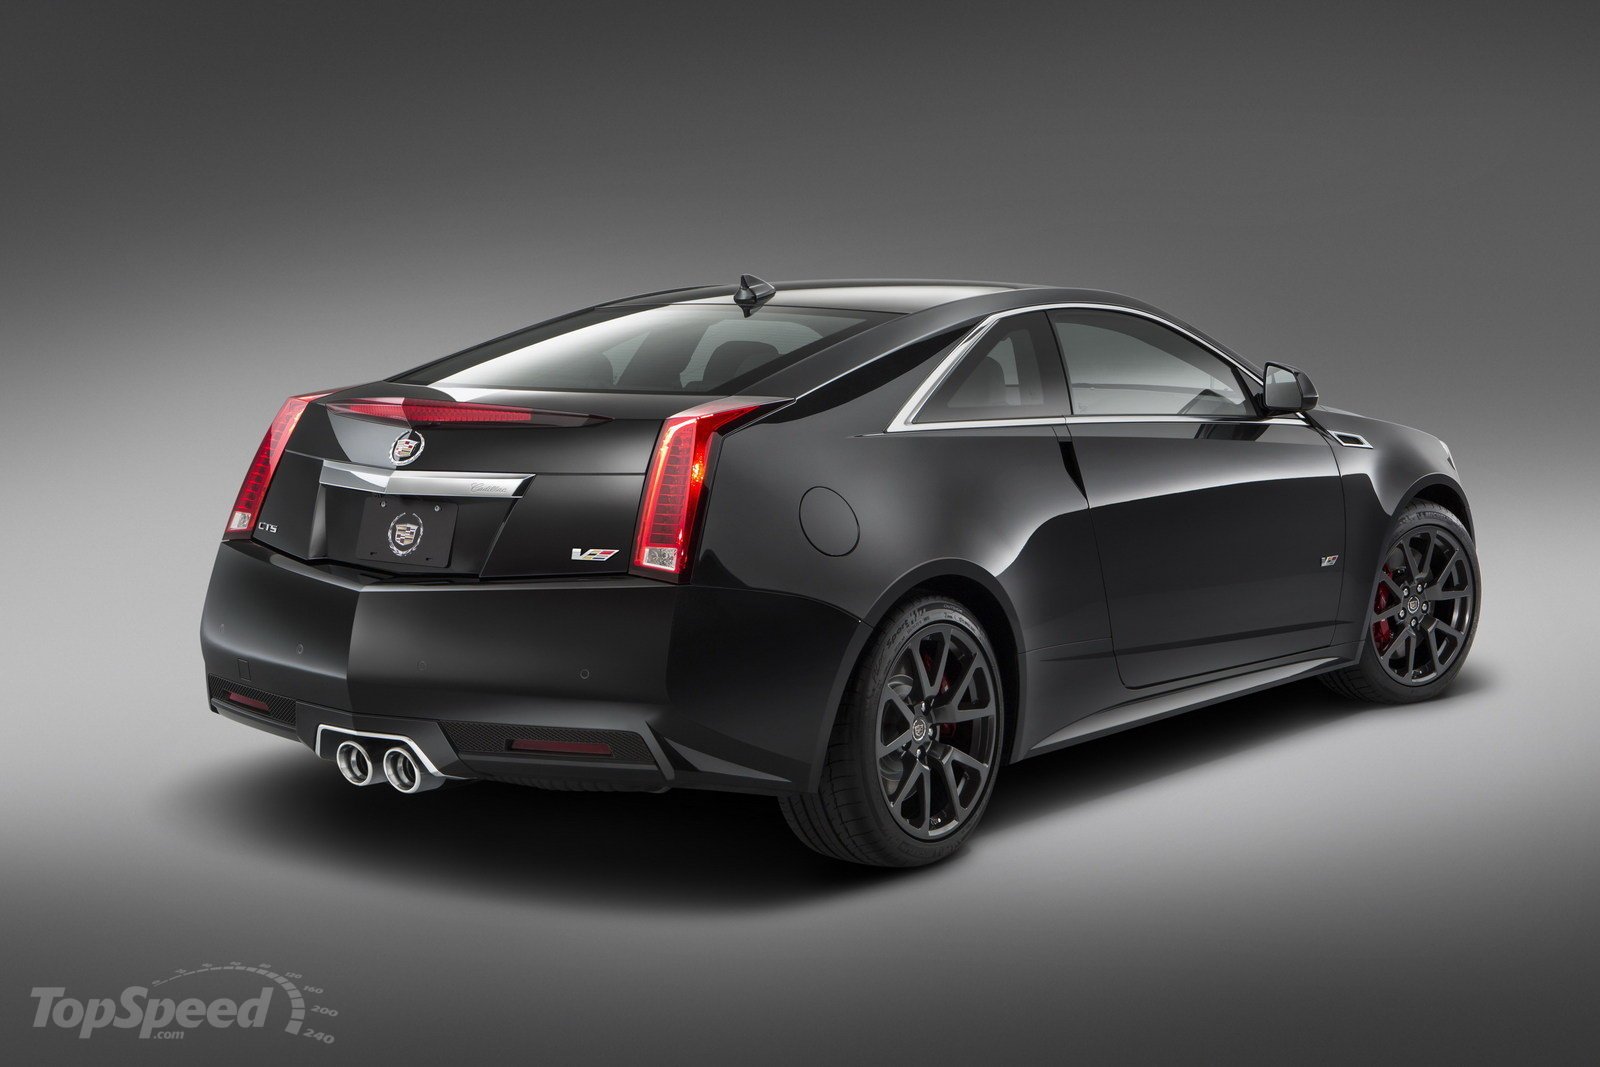 2015 Cadillac Cts-v Coupe Photos, Informations, Articles ...